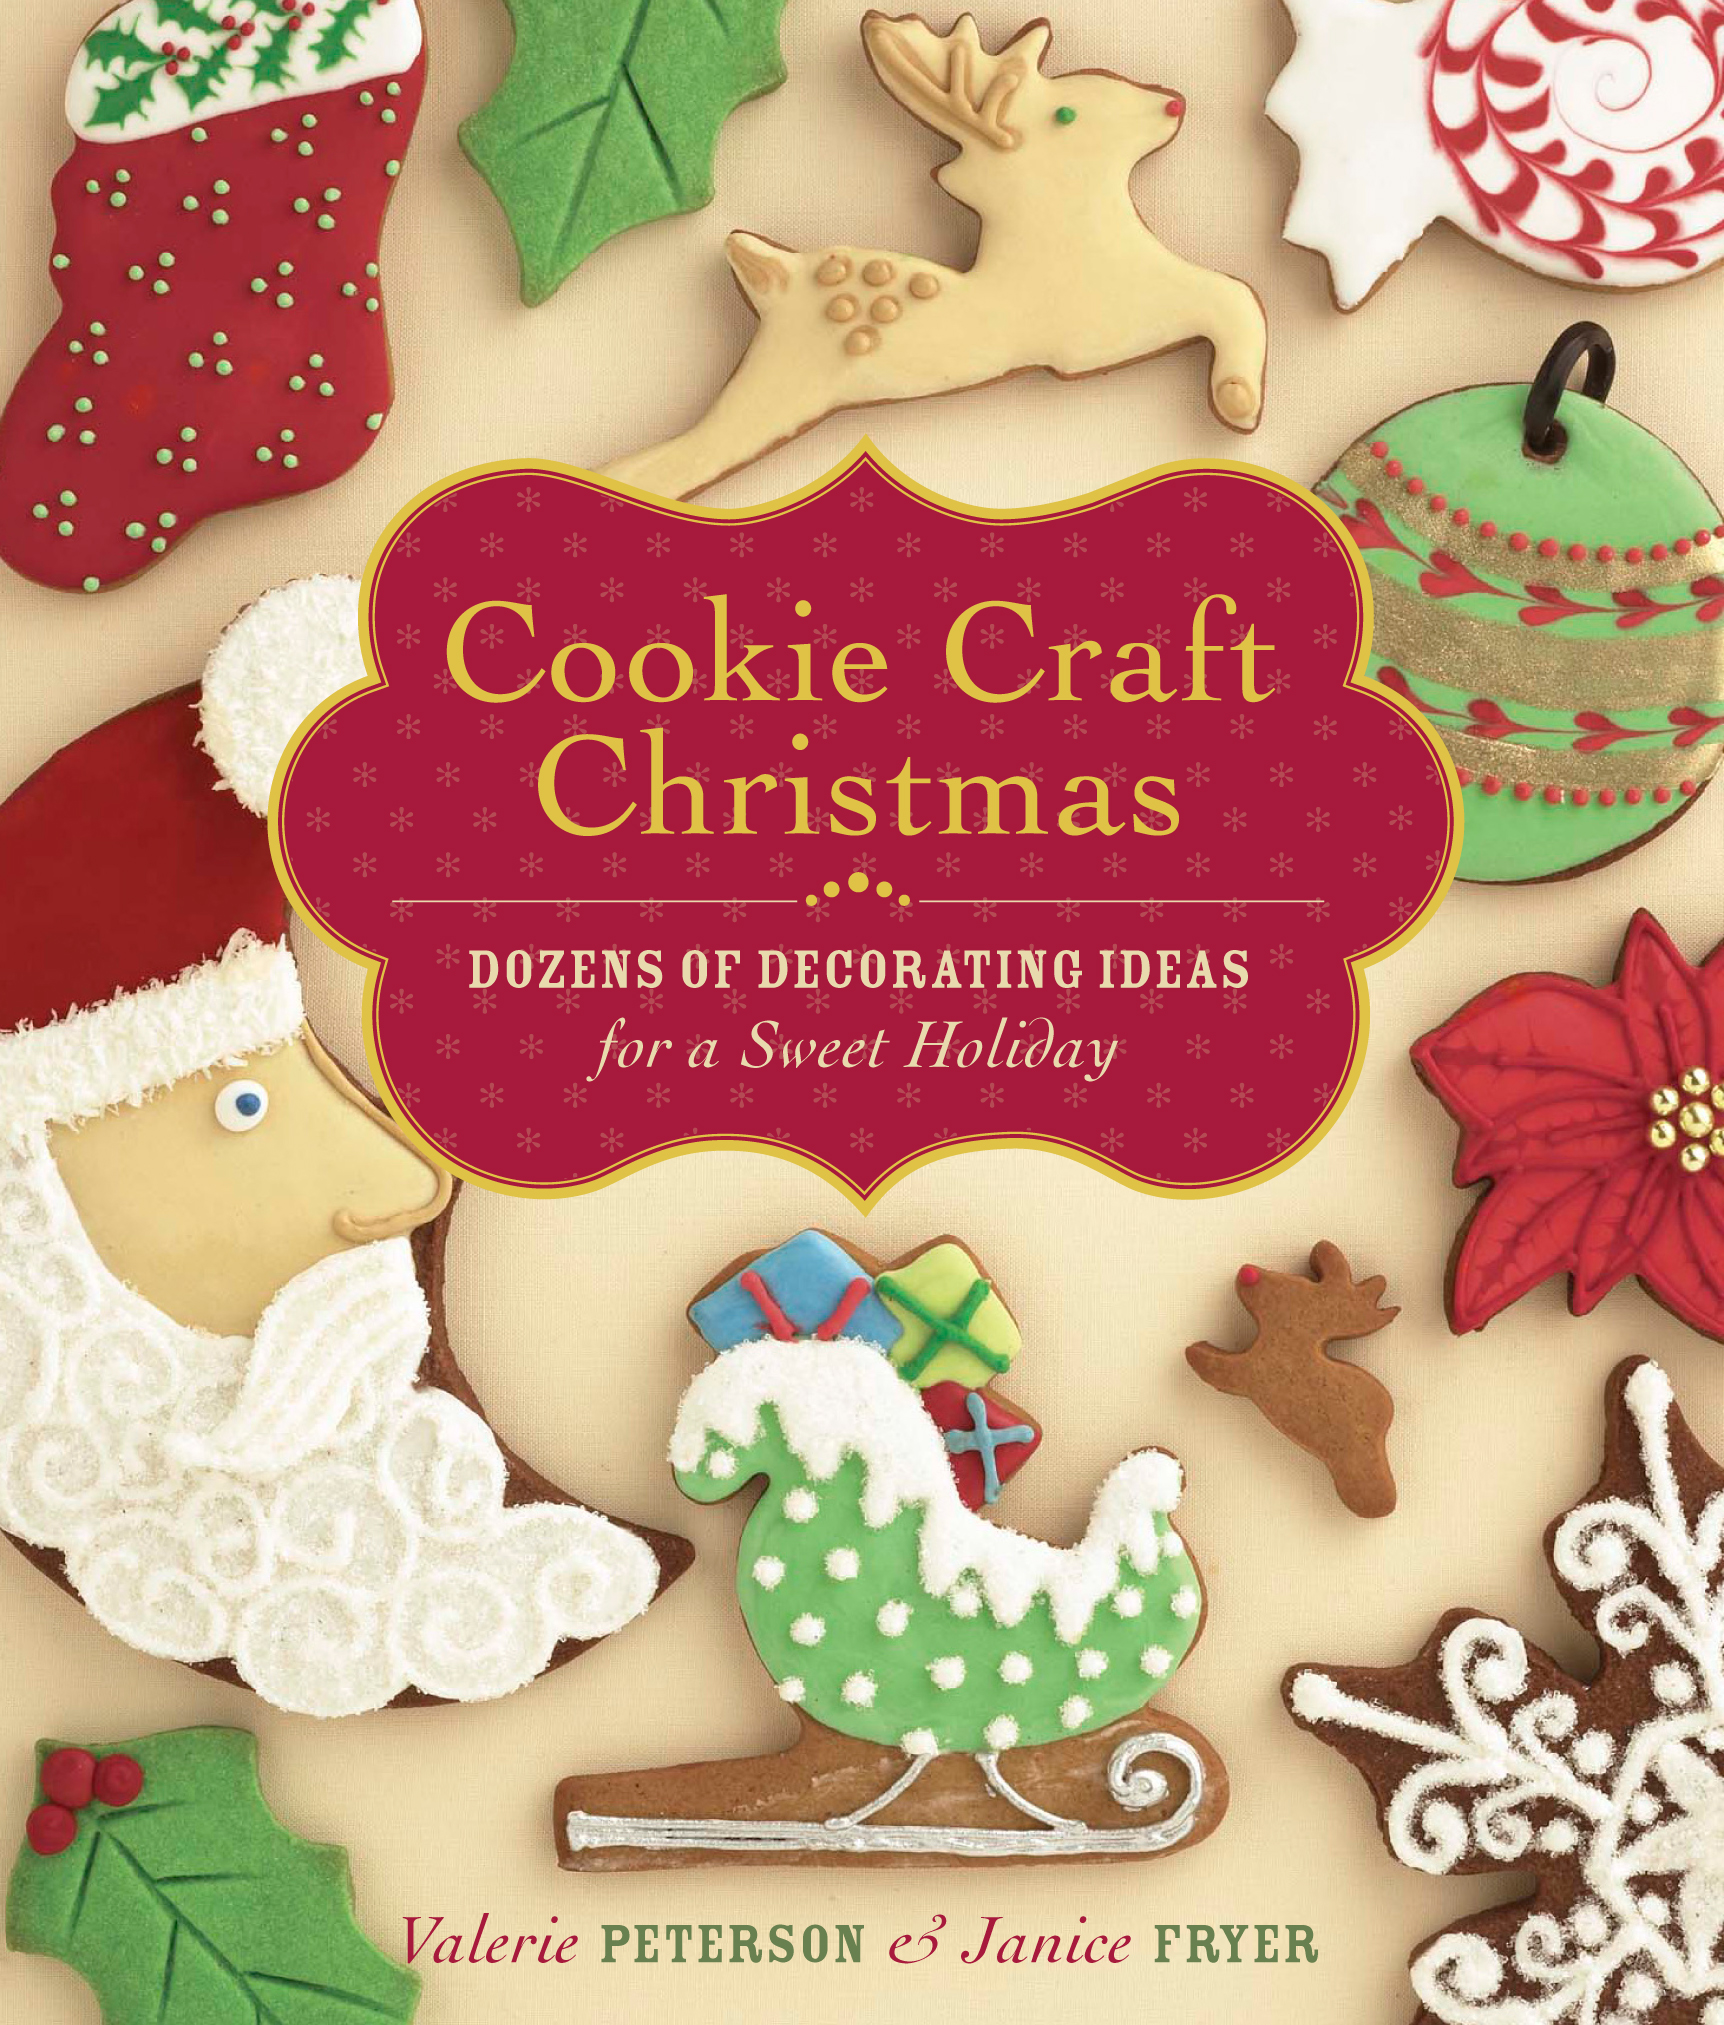 Cookie Craft Christmas Dozens of Decorating Ideas for a Sweet Holiday - Valerie Peterson